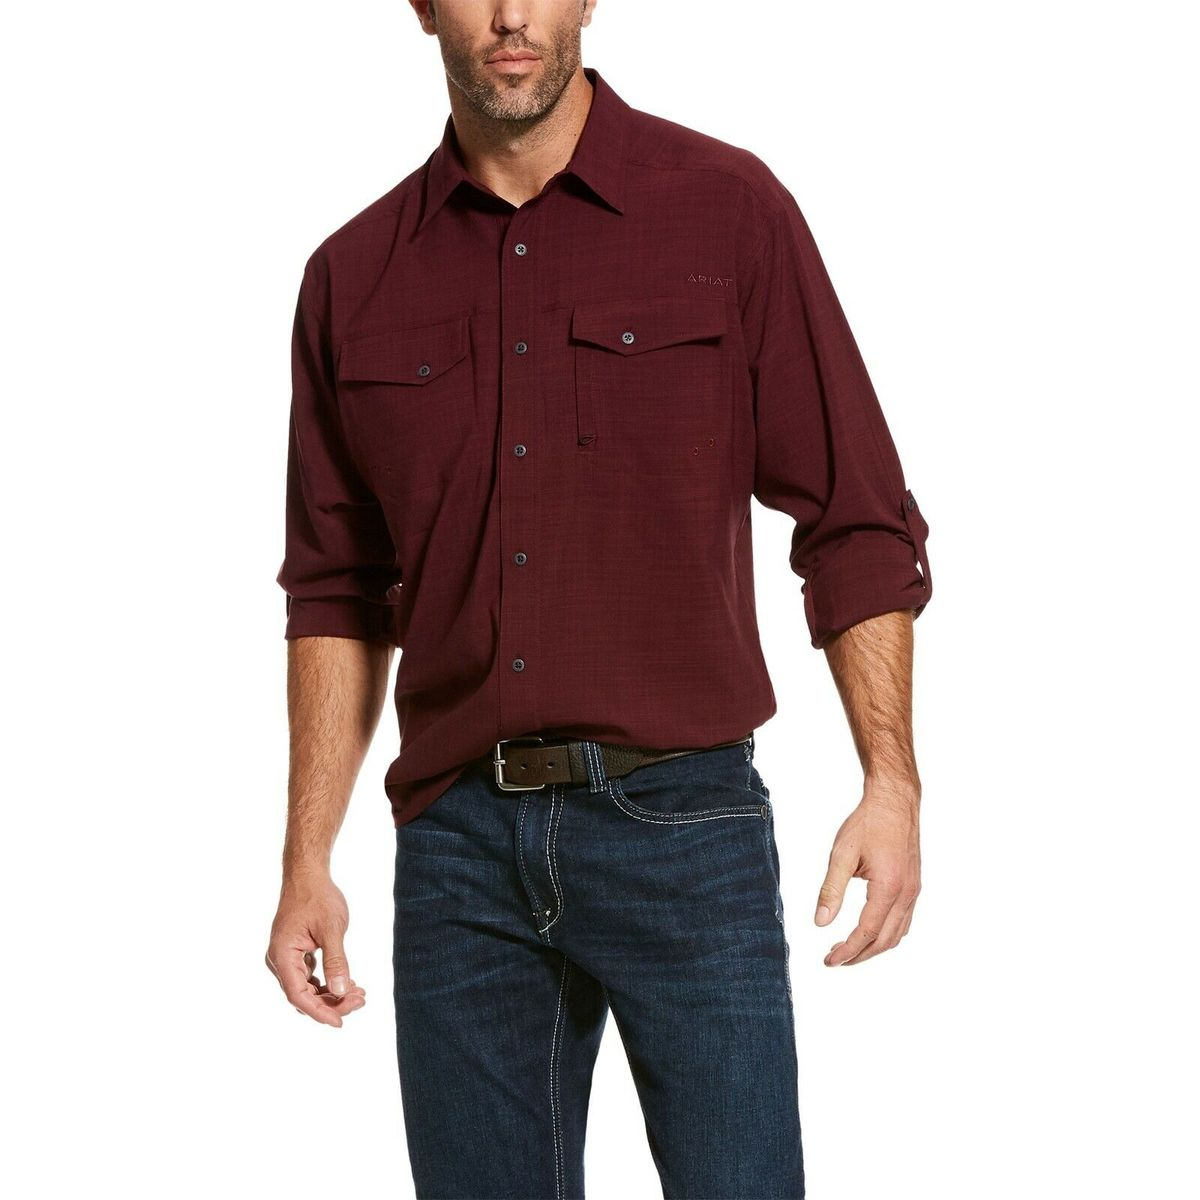 Men's Ariat Ancho Chile Heather VentTek LS Performance Classic Shirt, 10028406